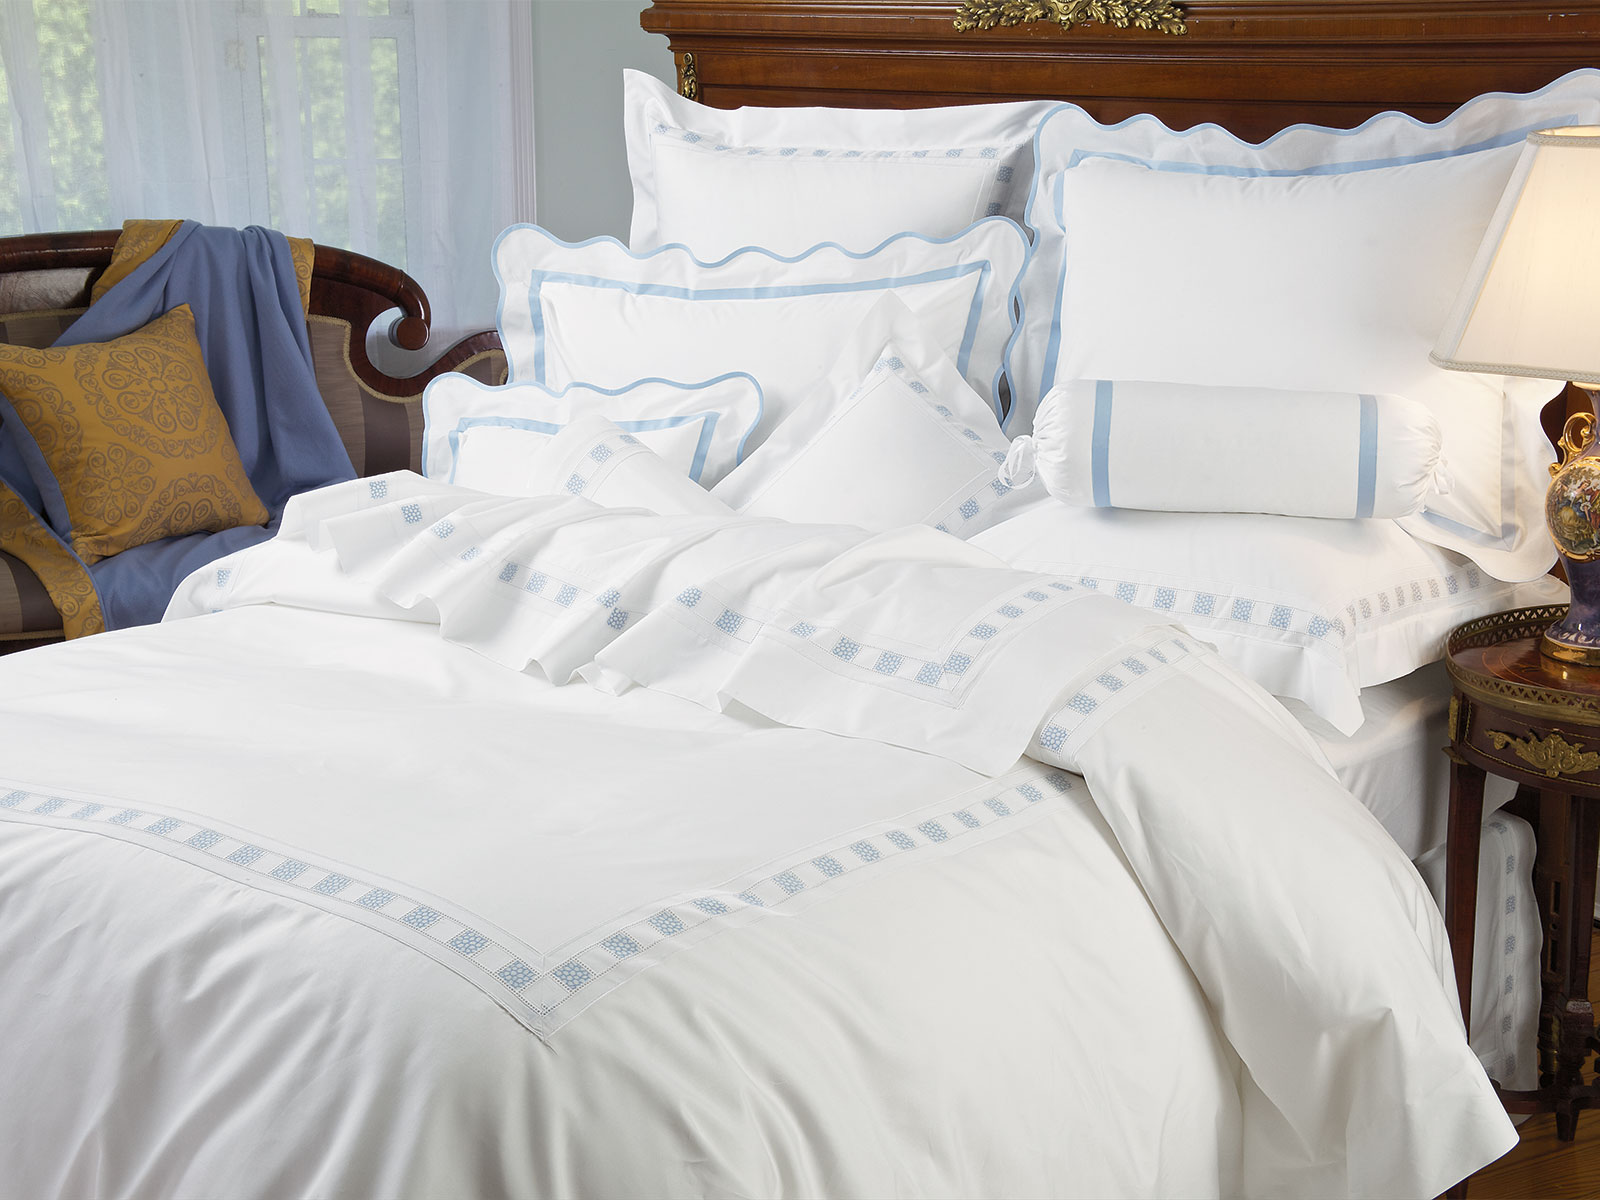 Prato Luxury Bedding Italian Bed Linens Schweitzer Linen